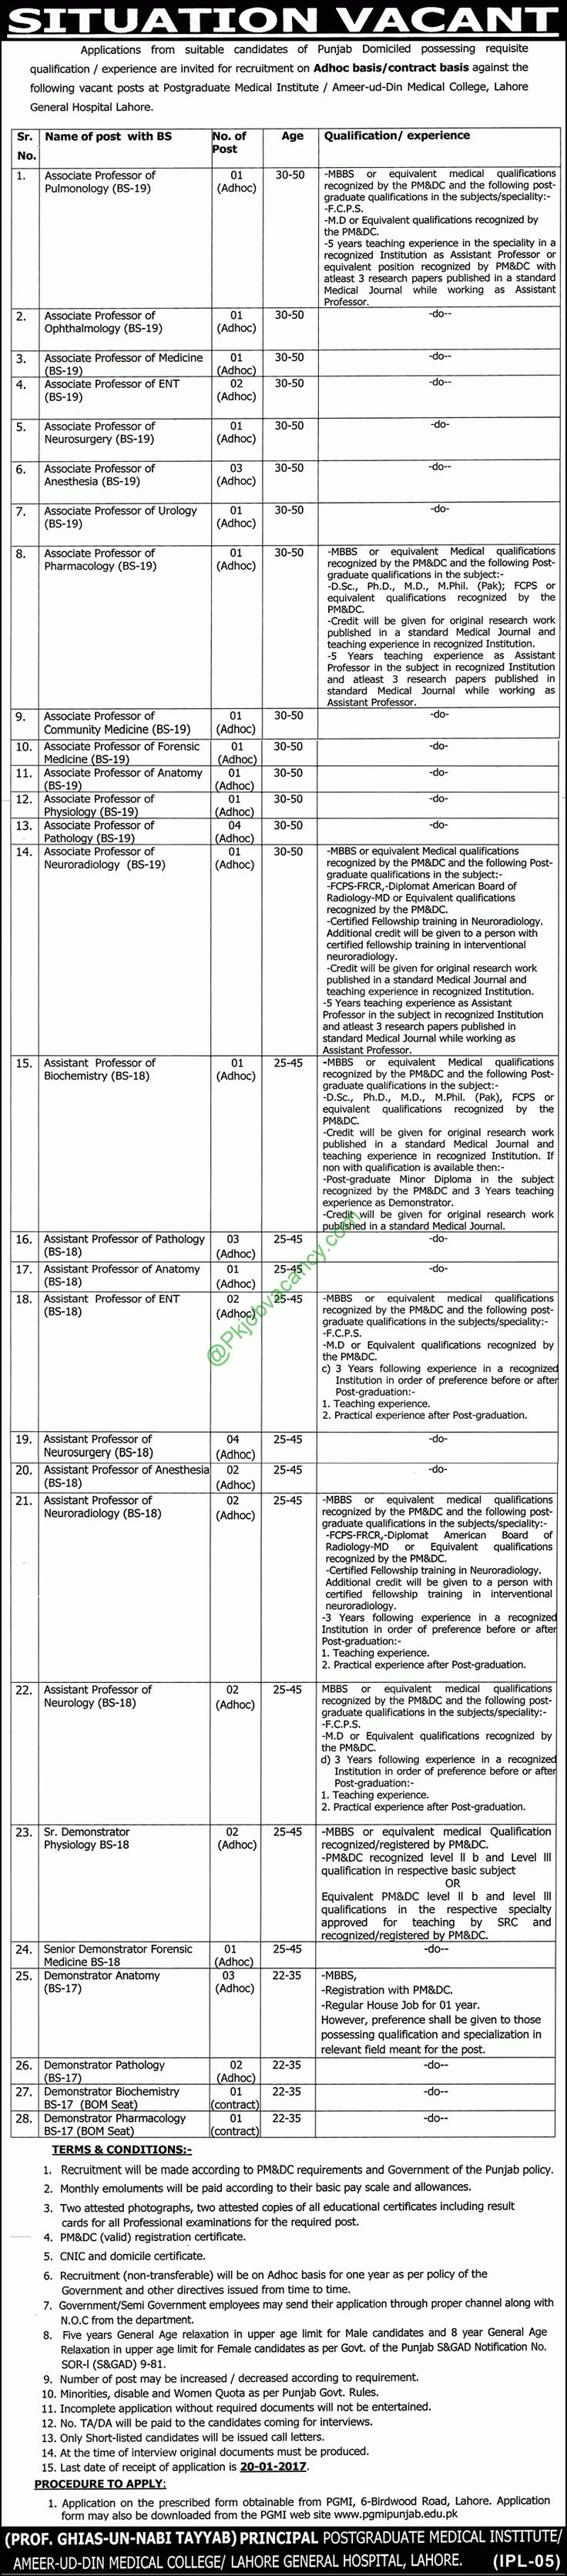 Ameer ud Din Medical College Lahore General Hospital Jobs Express Newspaper 5th January 2017